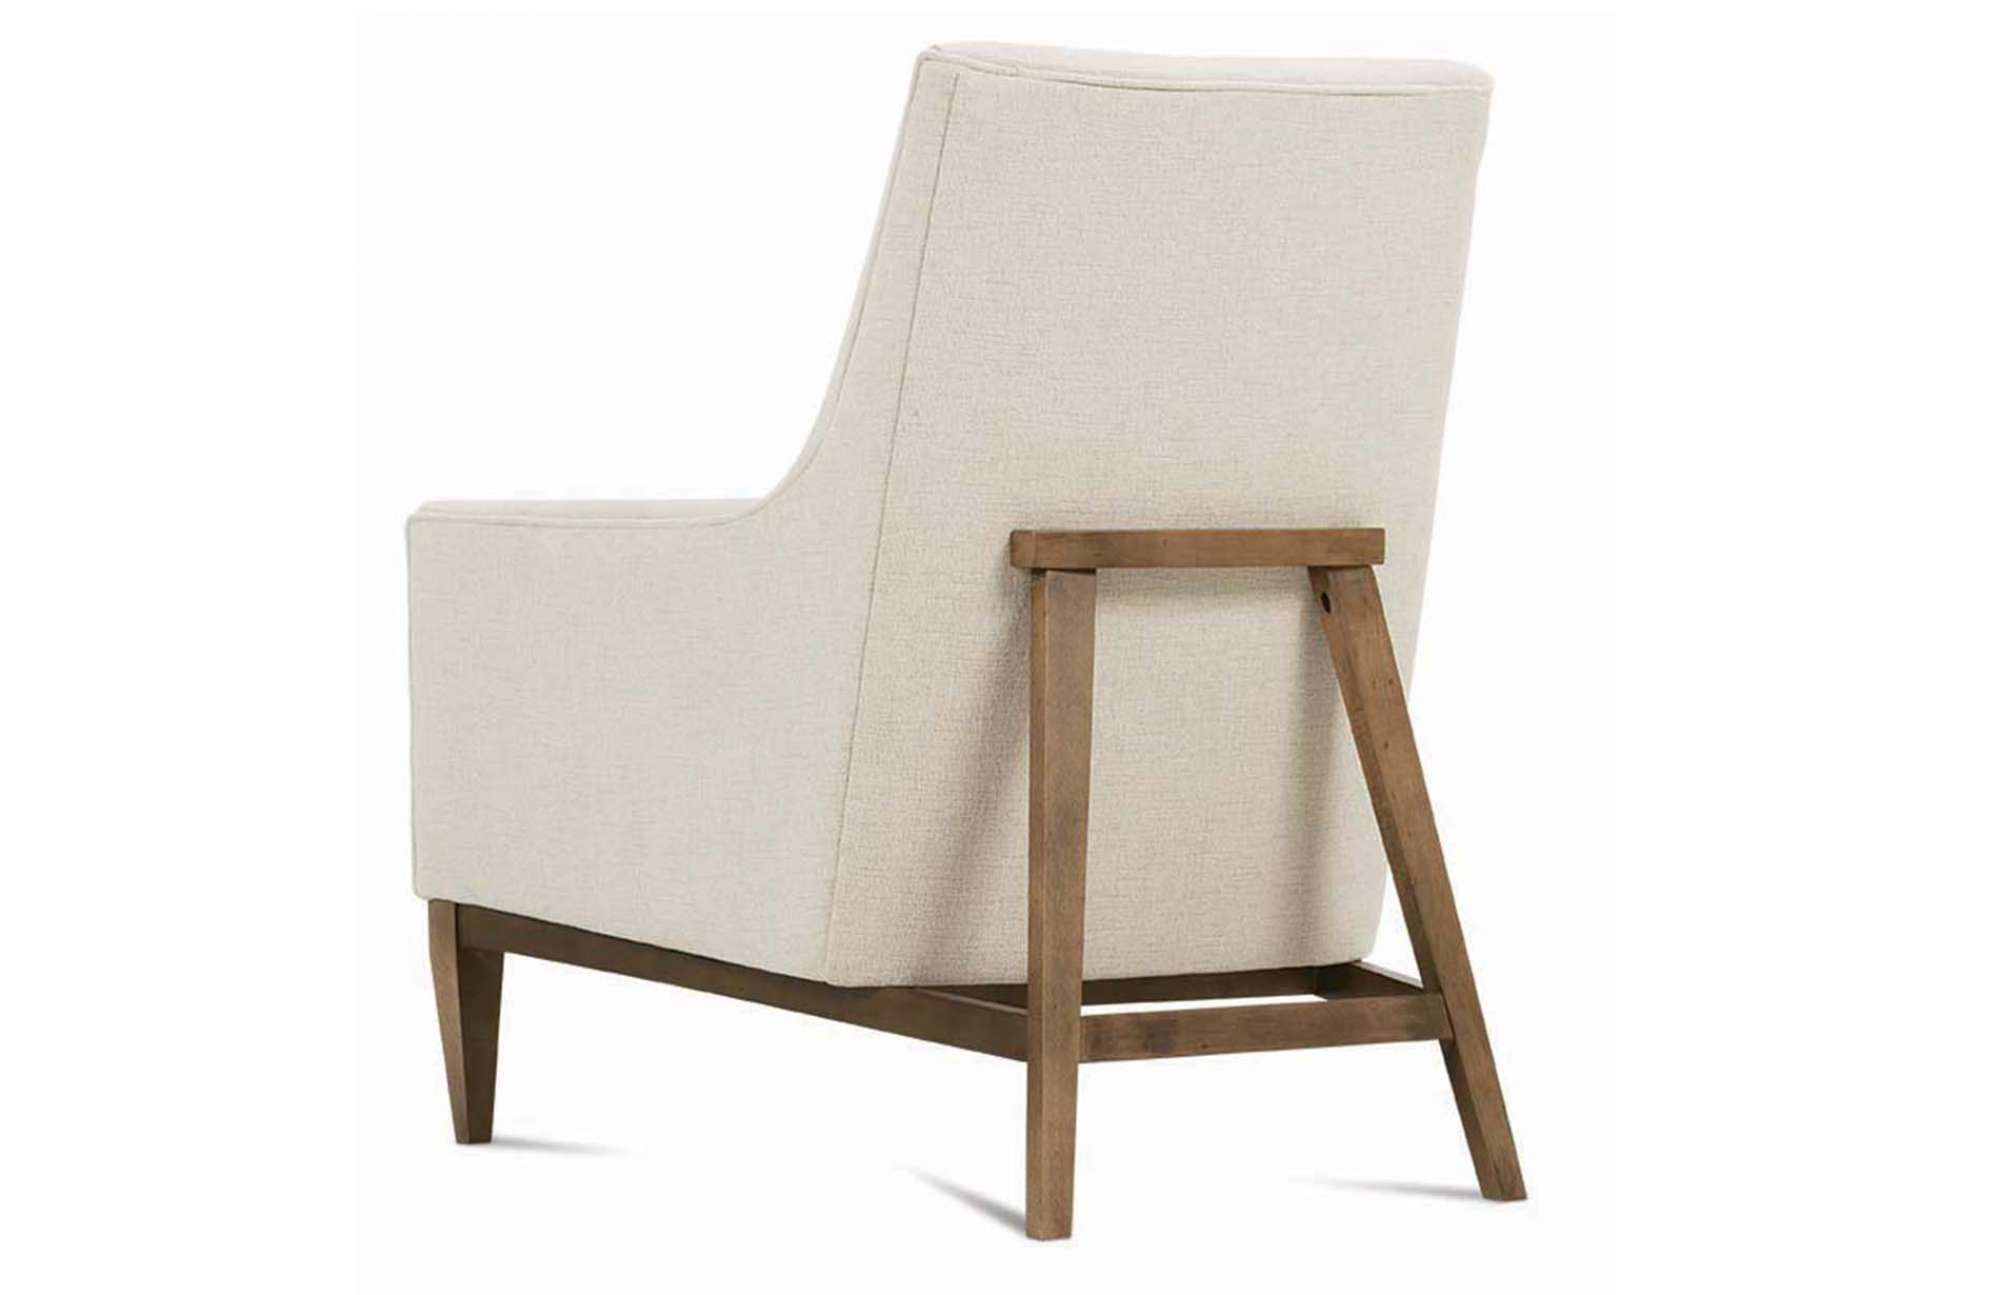 The Thatcher Chair Design From Rowe Furniture Offers Both Comfort And  Elegance. Customize The Fabric